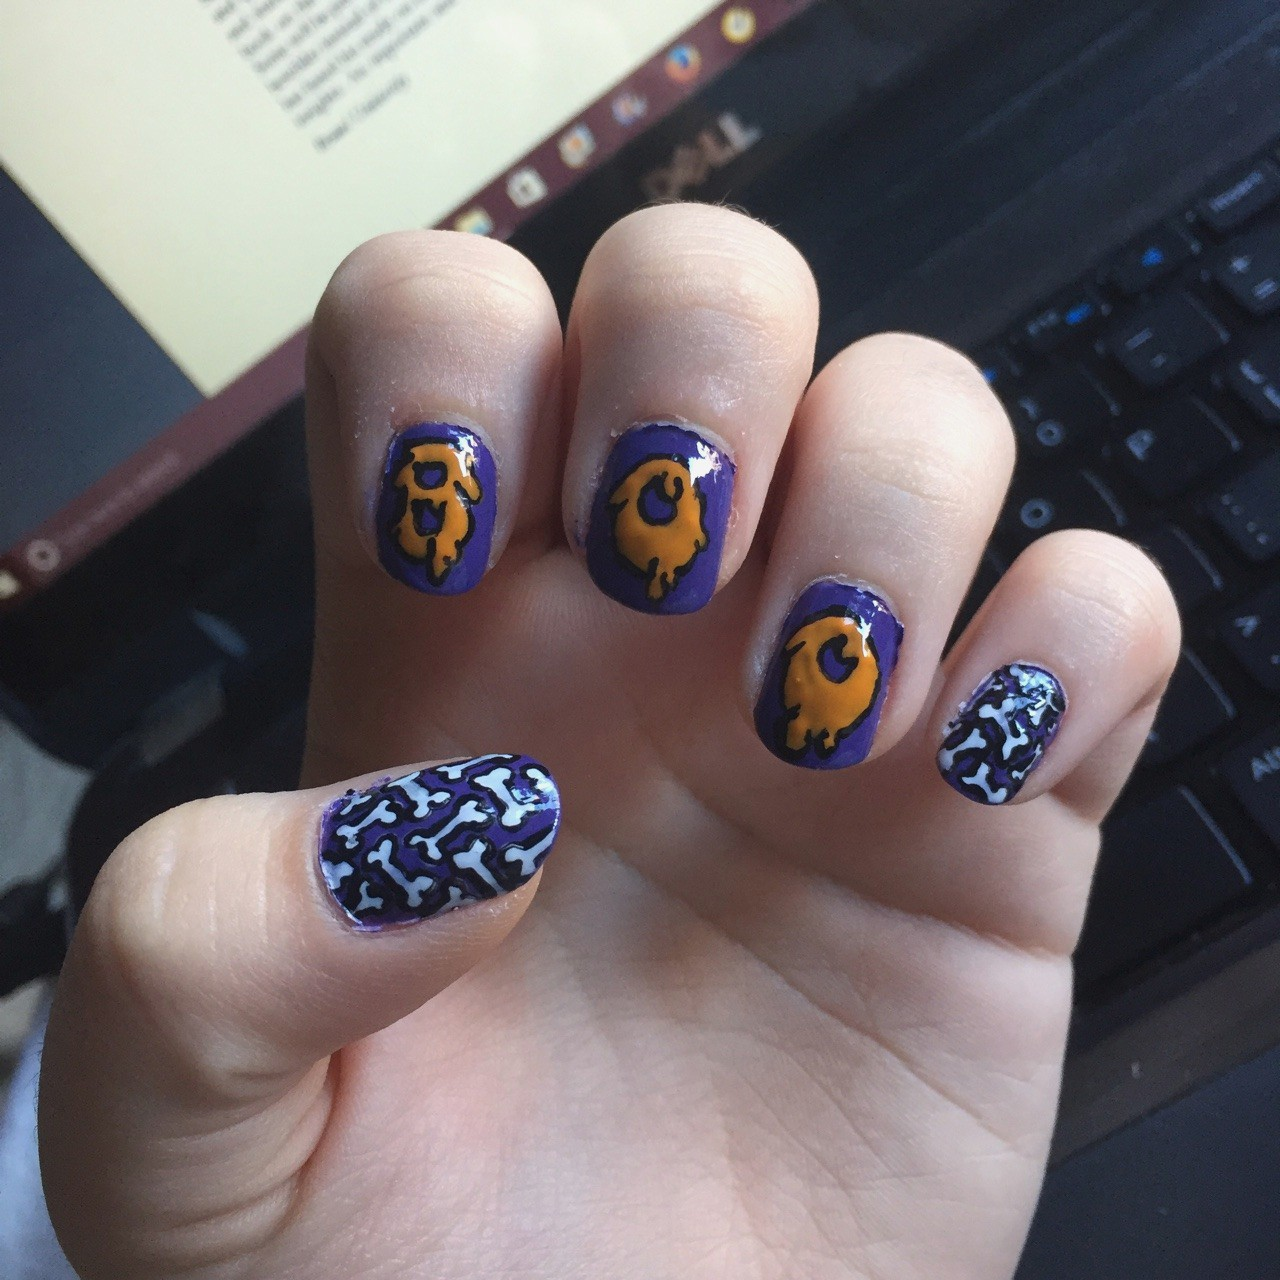 Awesome Halloween Nails Tumblr To Try For 2018 @[Summer Nail Designs for 2018 Best Nail Art Ideas Best Nail Art Ideas for Summer Nail Art Ideas Best Nail Designs and Tutorials Unique Nail Art Designs SUMMER Nail Art 2018 on Pinterest Nail Art Designs on Pinterest Nail Art Designs 2018 Easy DIY Nail Art Tutorials 2018 Best Nails of 2018 New Nail Art Design Trends for 2018 Nail designs 2018 Cute Beautiful Nail Art Designs Just For You Design Tips Nail Art Designs & Ideas 2018 Easy Tips & Pictures